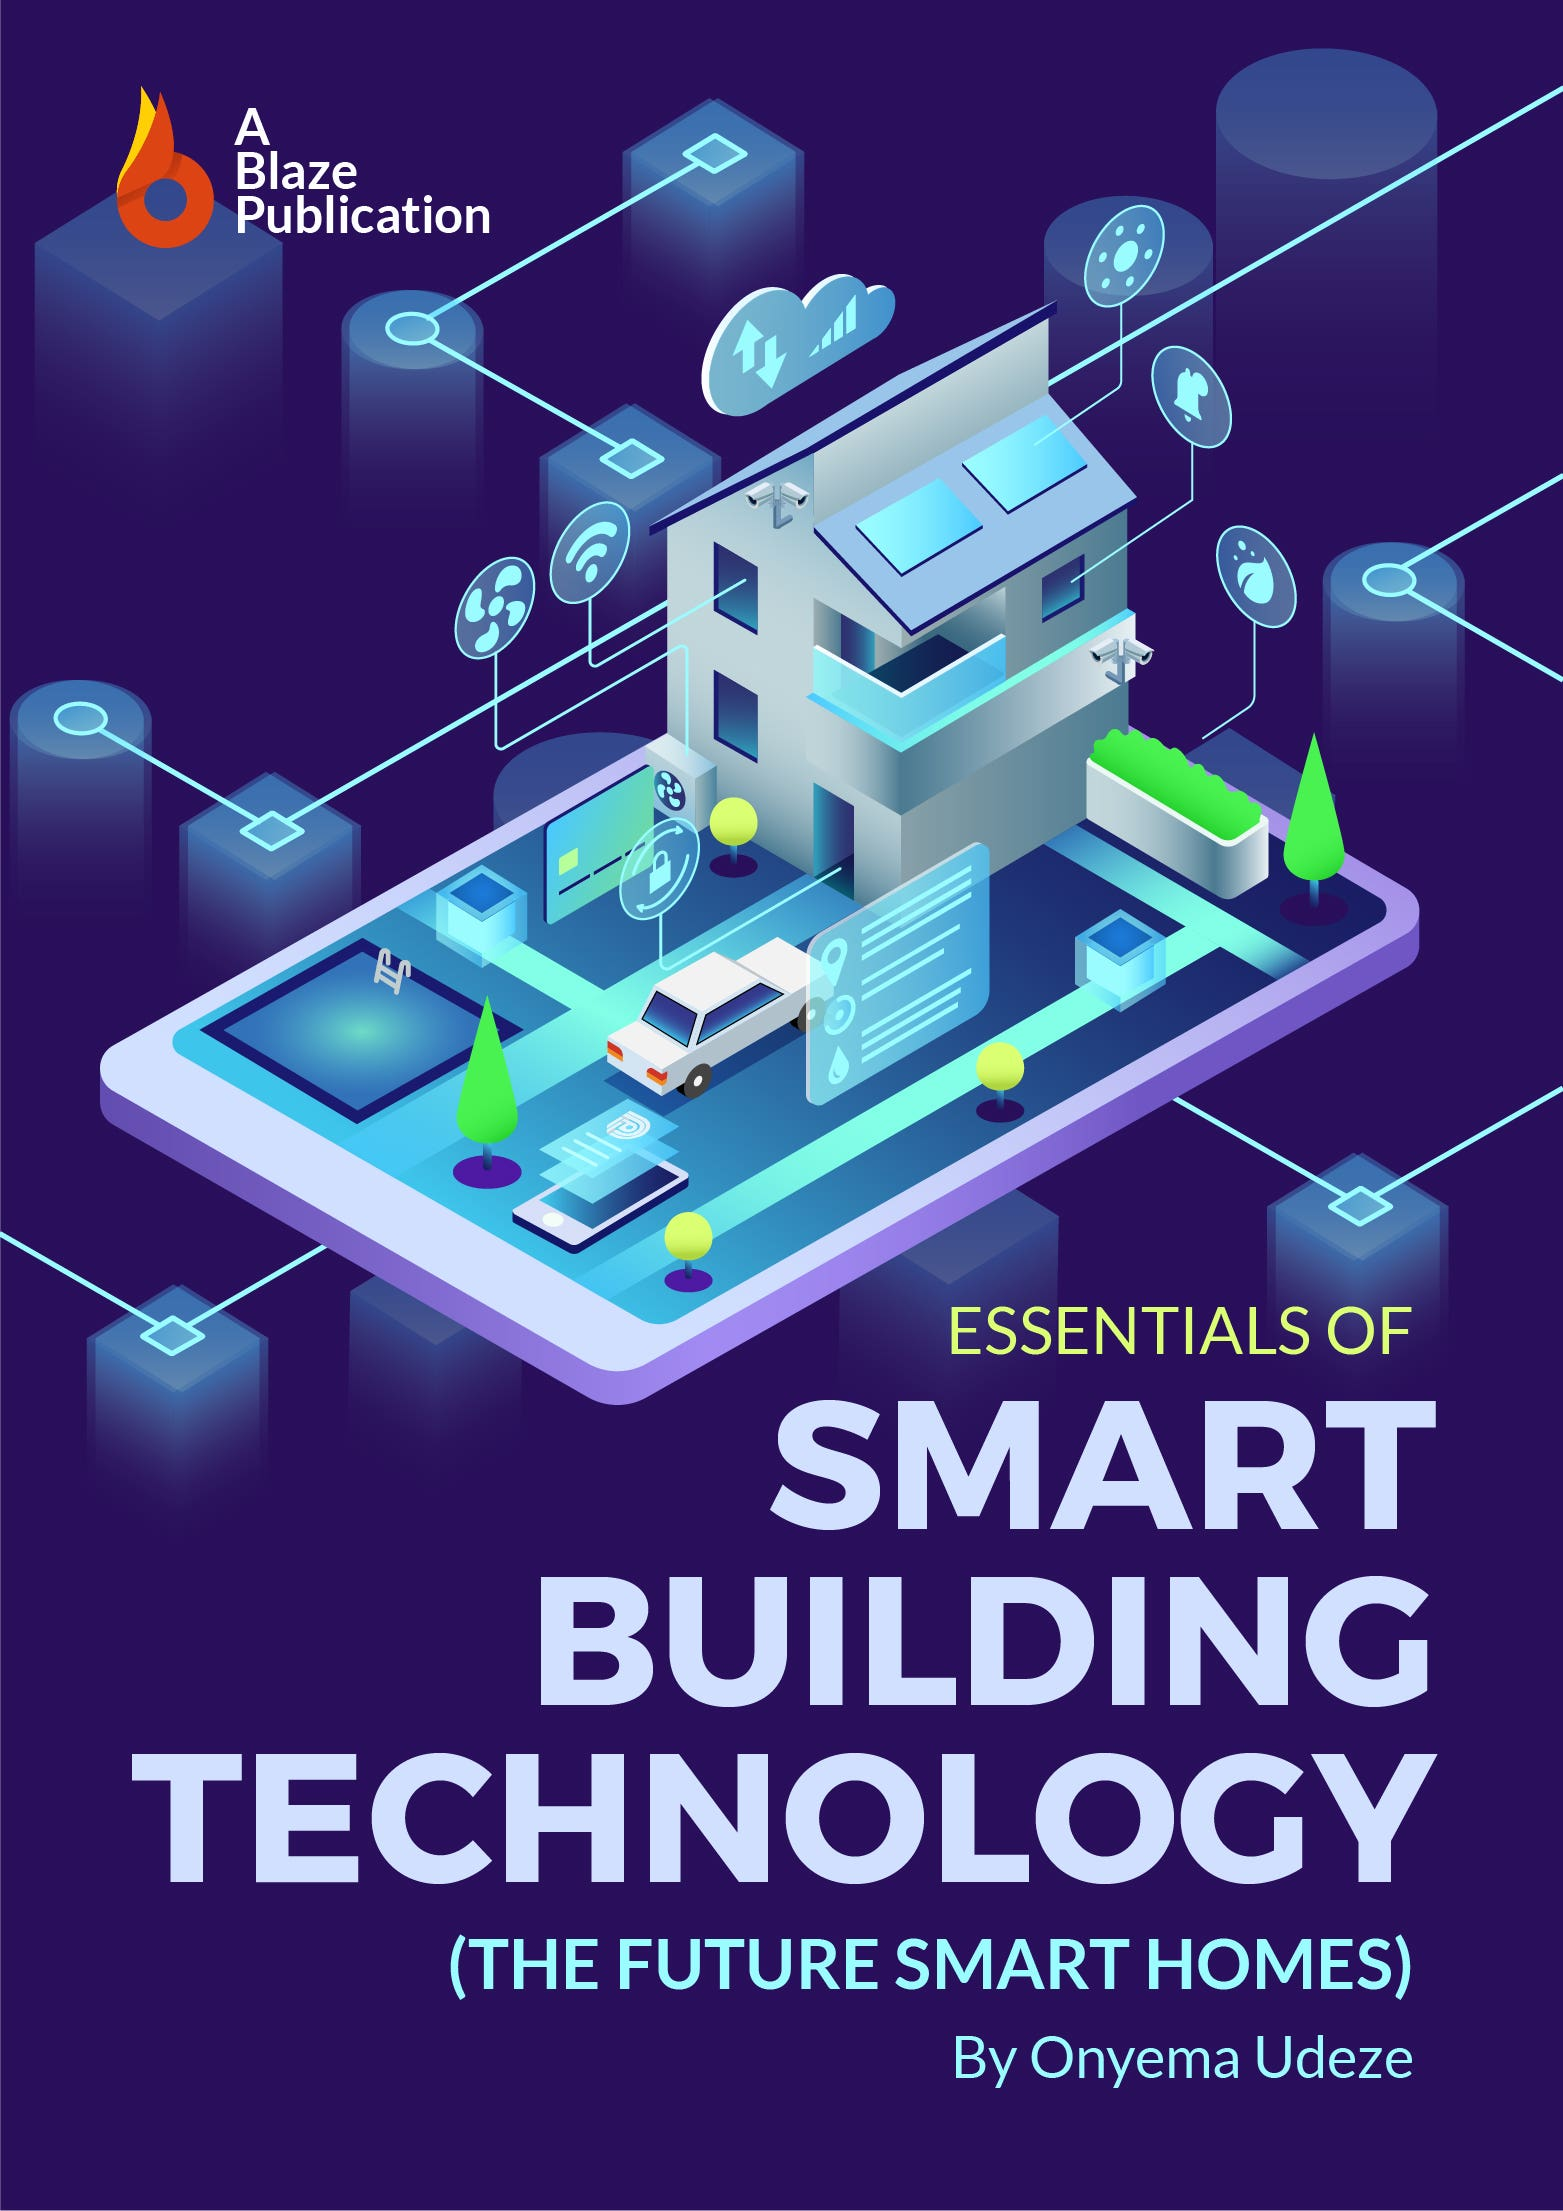 Essentials of Smart Building Technology: The Future Smart Homes - by Onyema Udeze